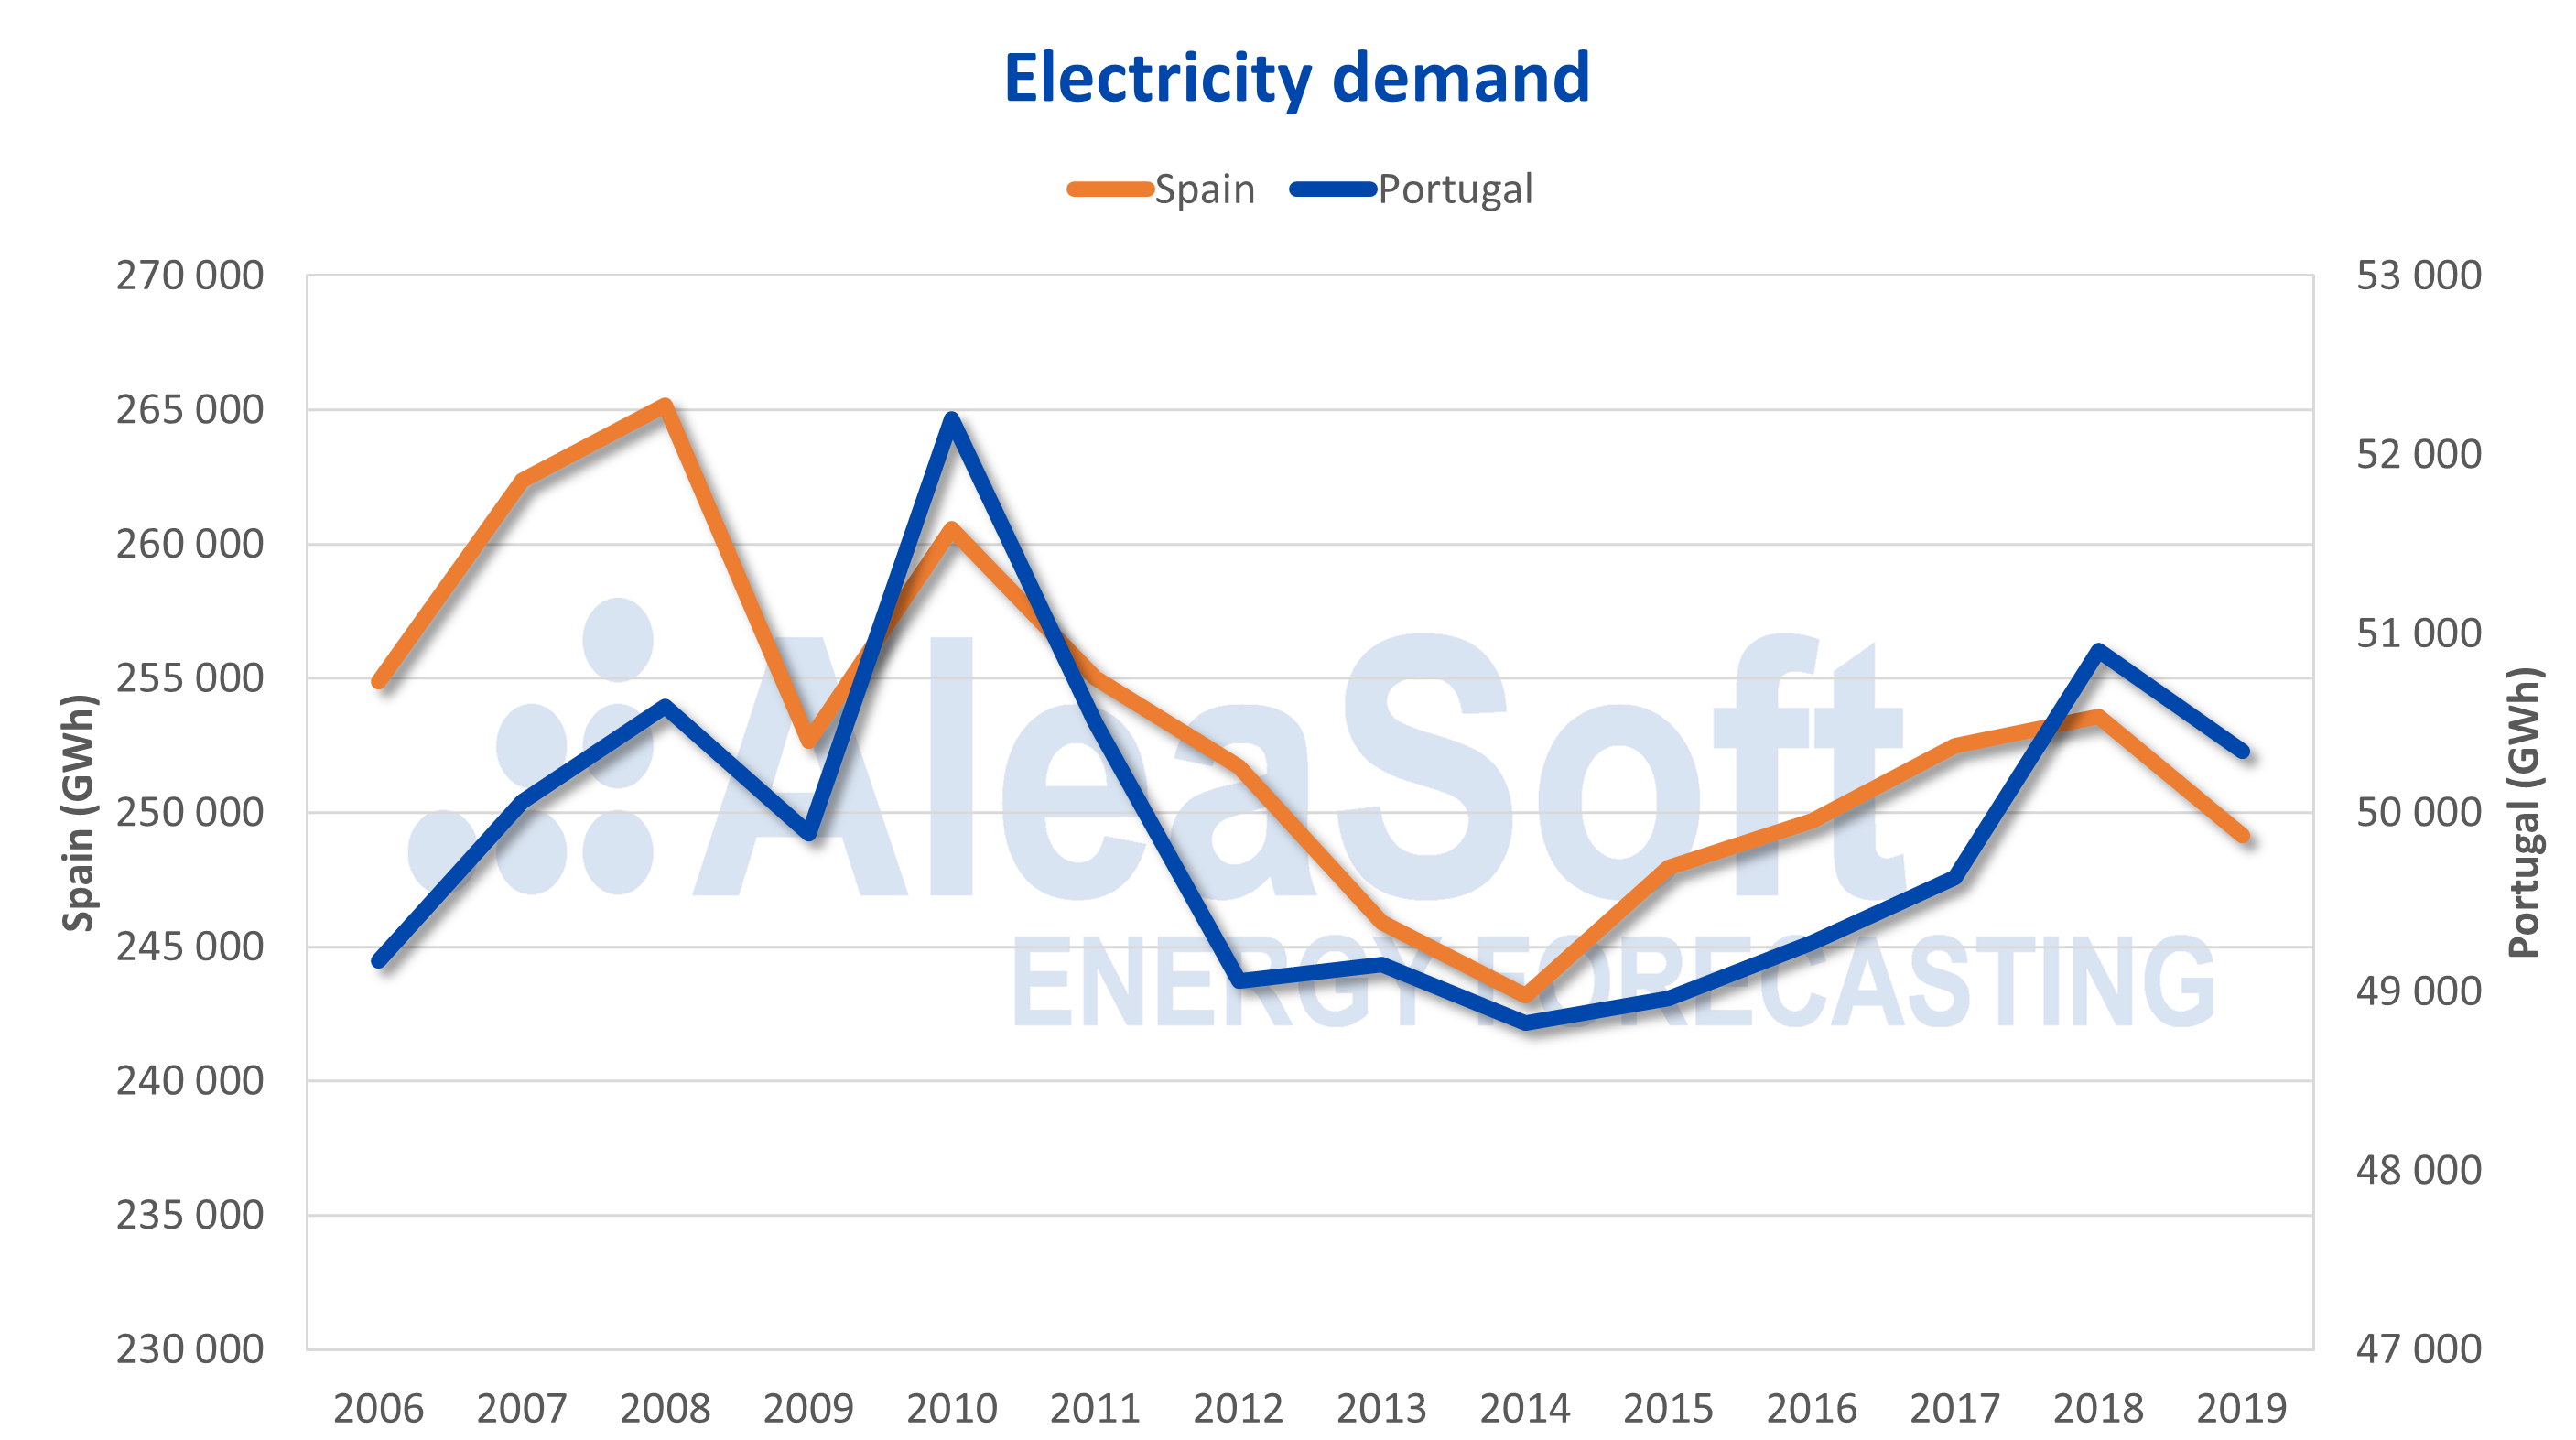 AleaSoft - Electricity demand Portugal Spain